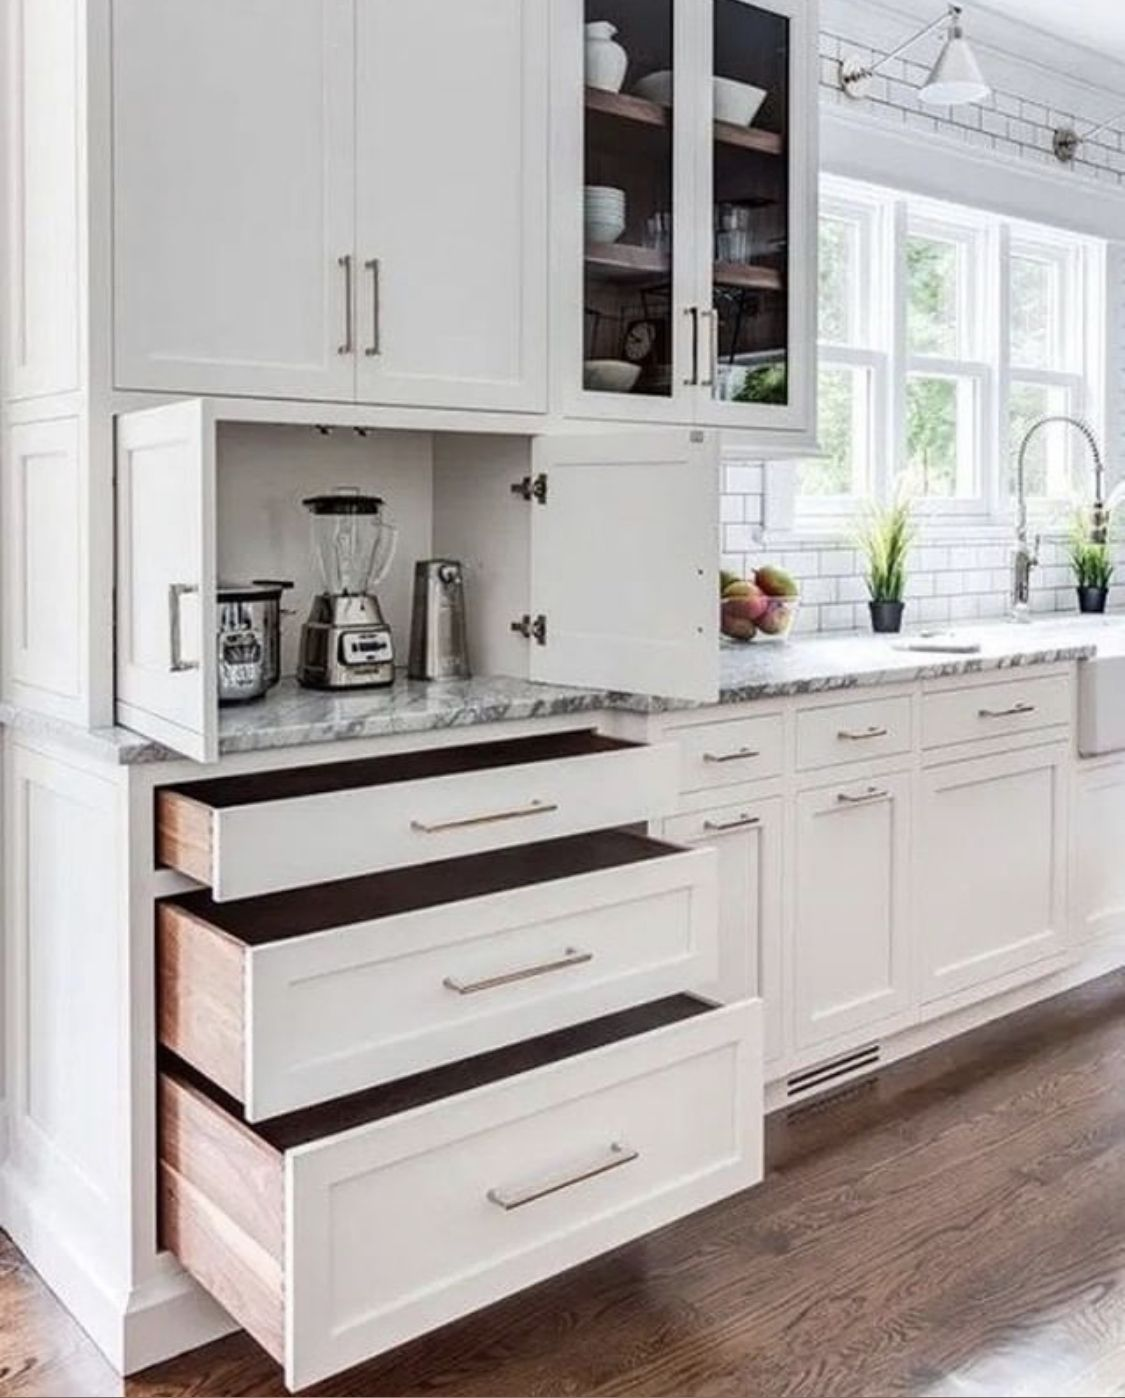 More Shallow Drawers Not Such Deep Ones In 2020 Kitchen Cabinet Design Kitchen Remodel Small Home Kitchens